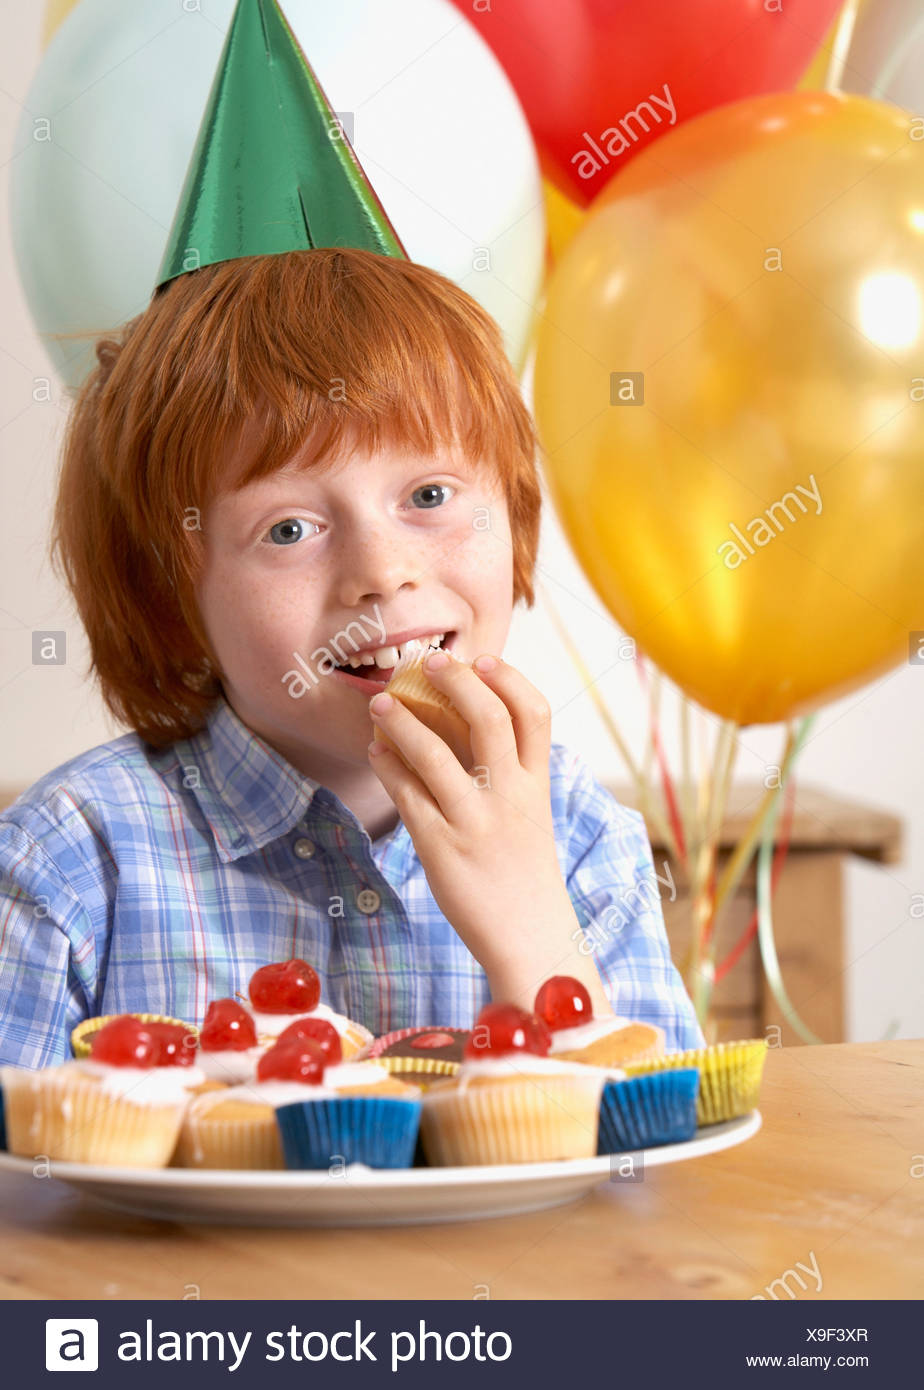 Young boy at birthday party eating a cupcake - Stock Image